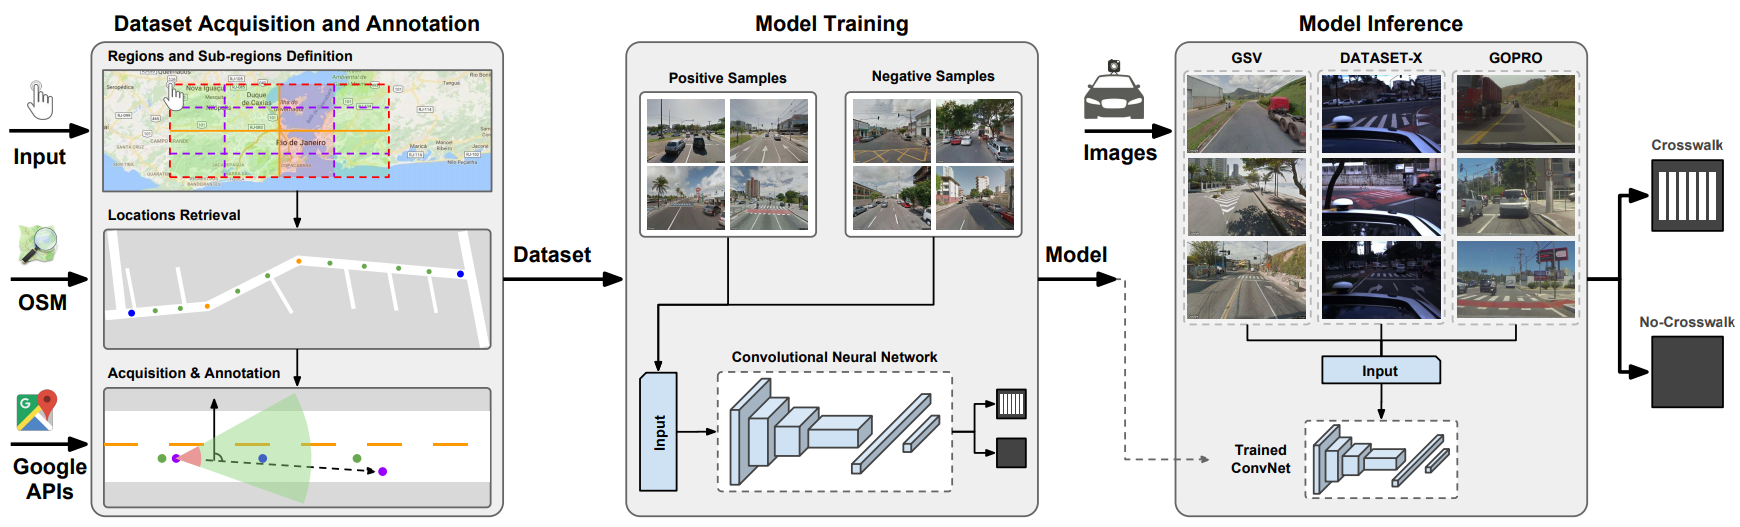 Automatic Large-Scale Data Acquisition via Crowdsourcing for Crosswalk Classification: A Deep Learning Approach